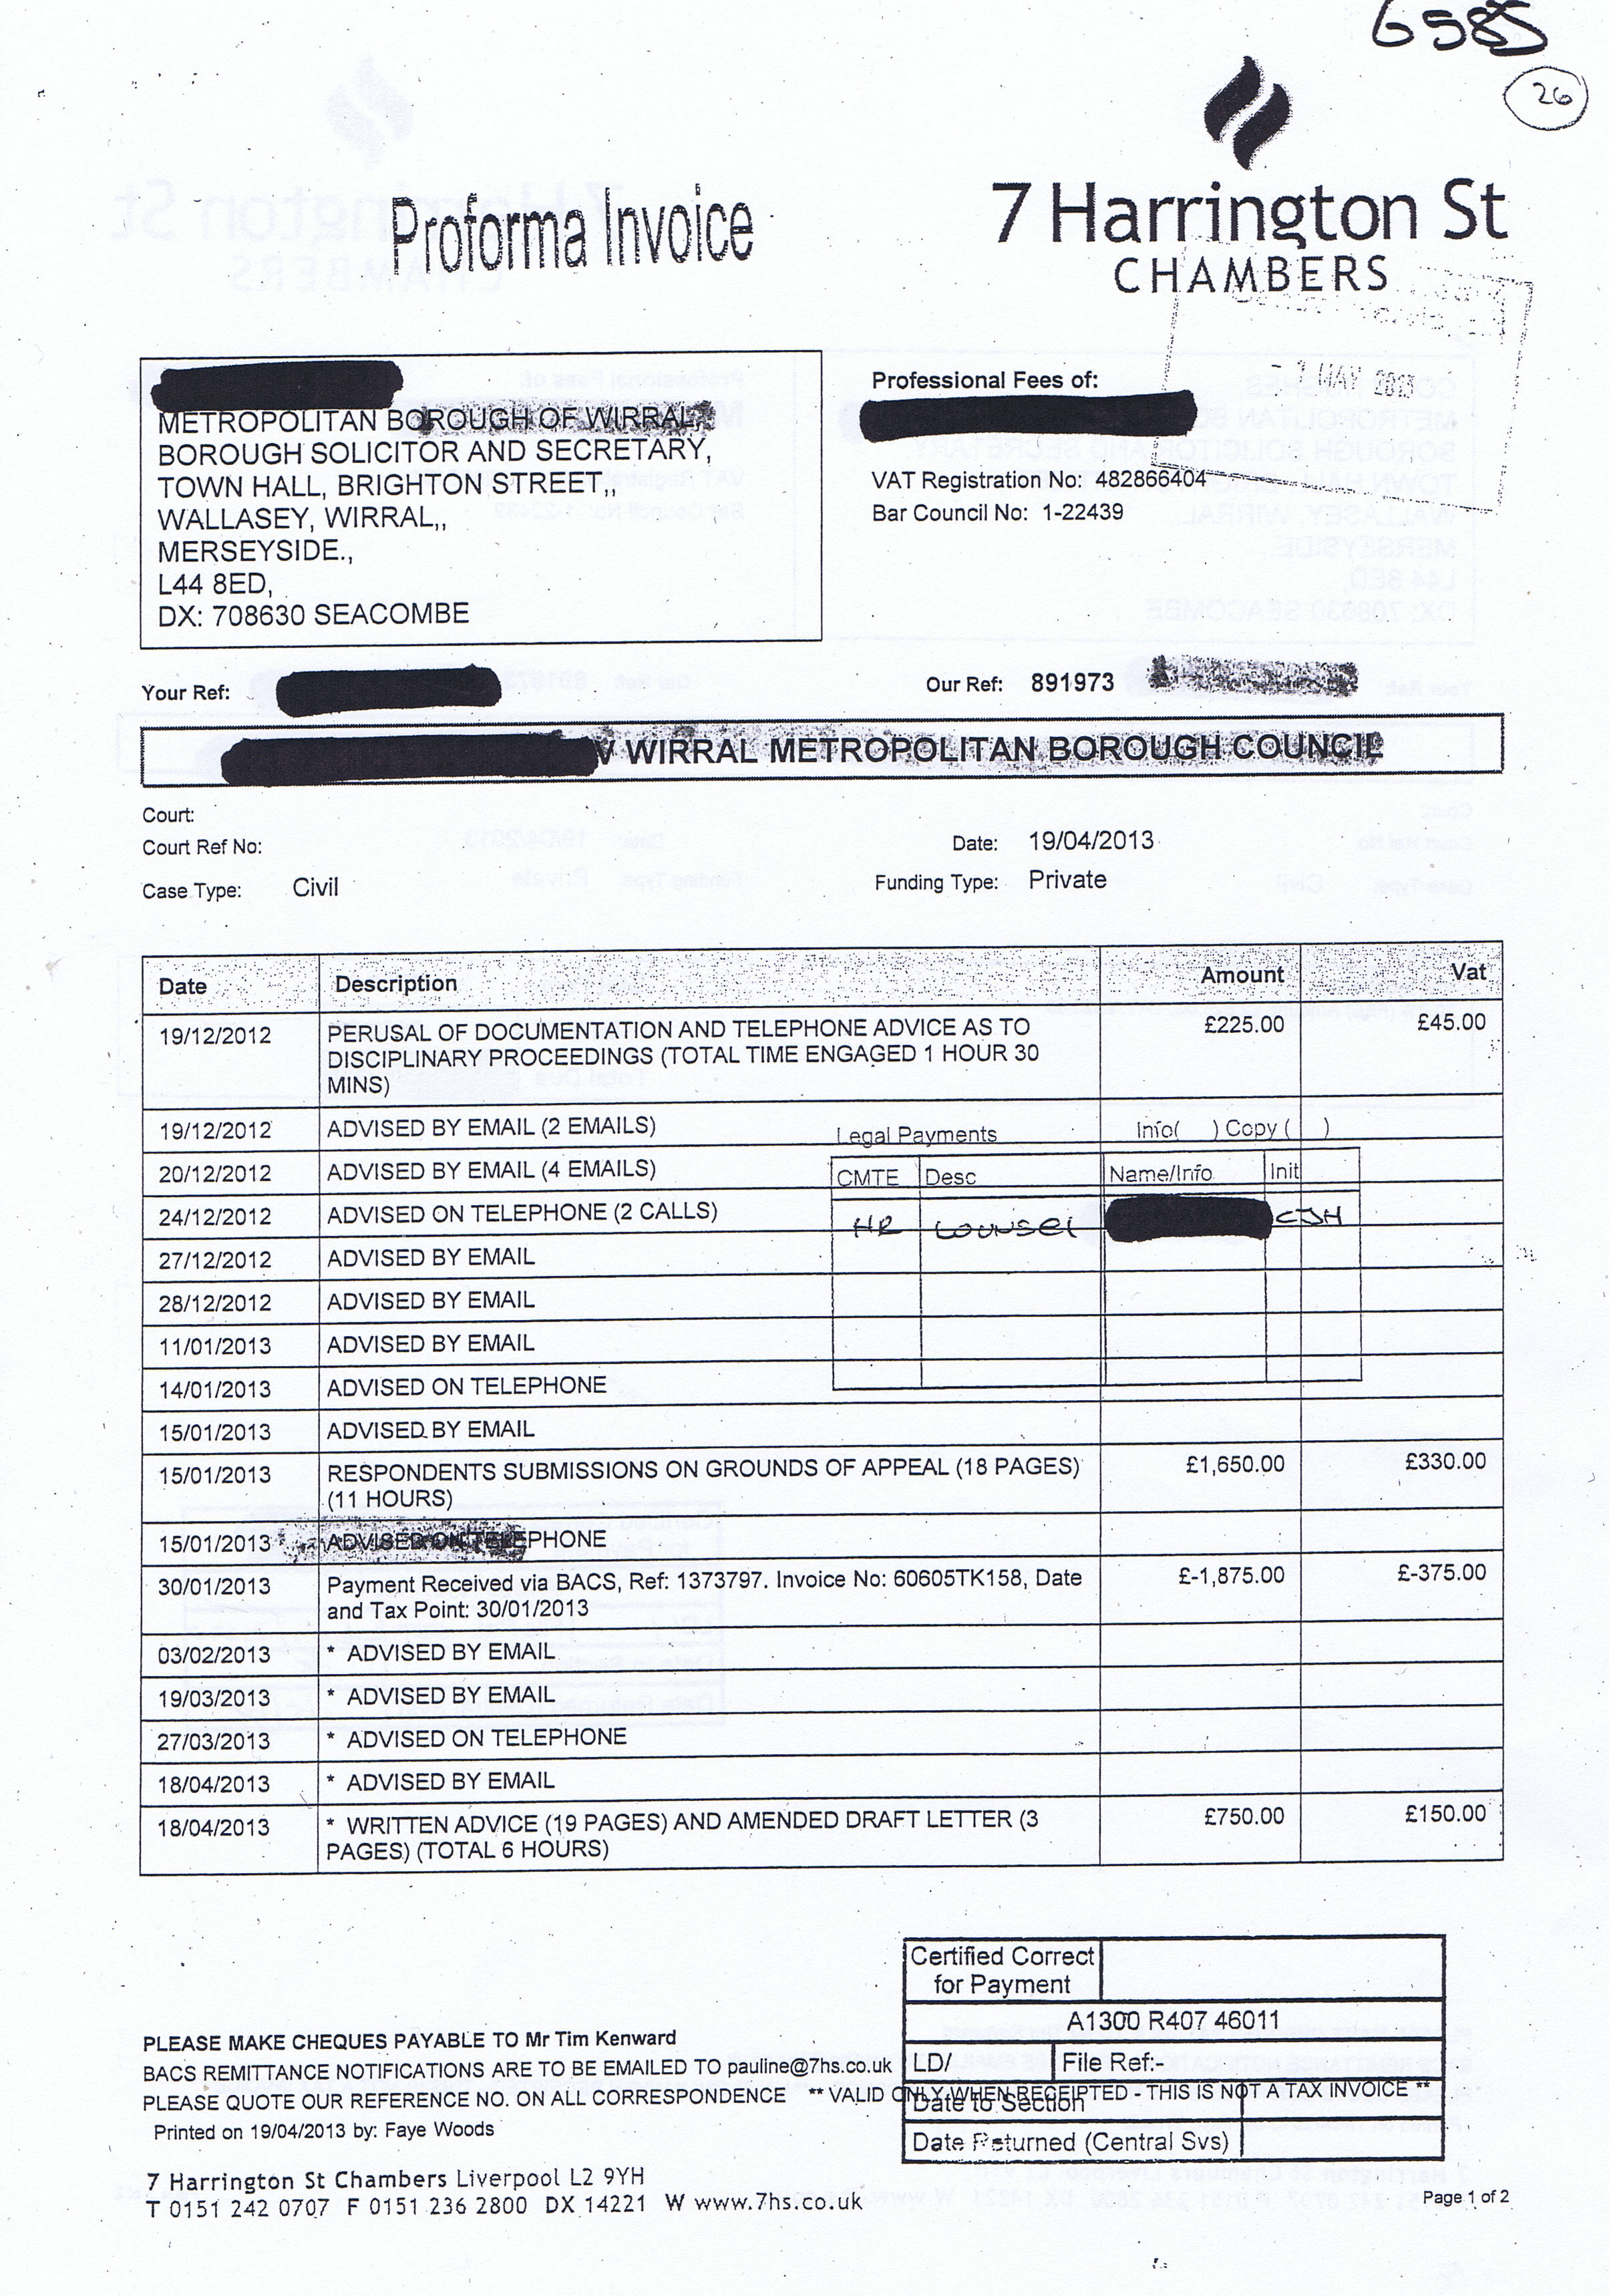 Marvelous Tim D N Kenward Invoice 2 Page 1 Of 2 7 Harrington Street Chambers 19th  April 2013  Written Invoice